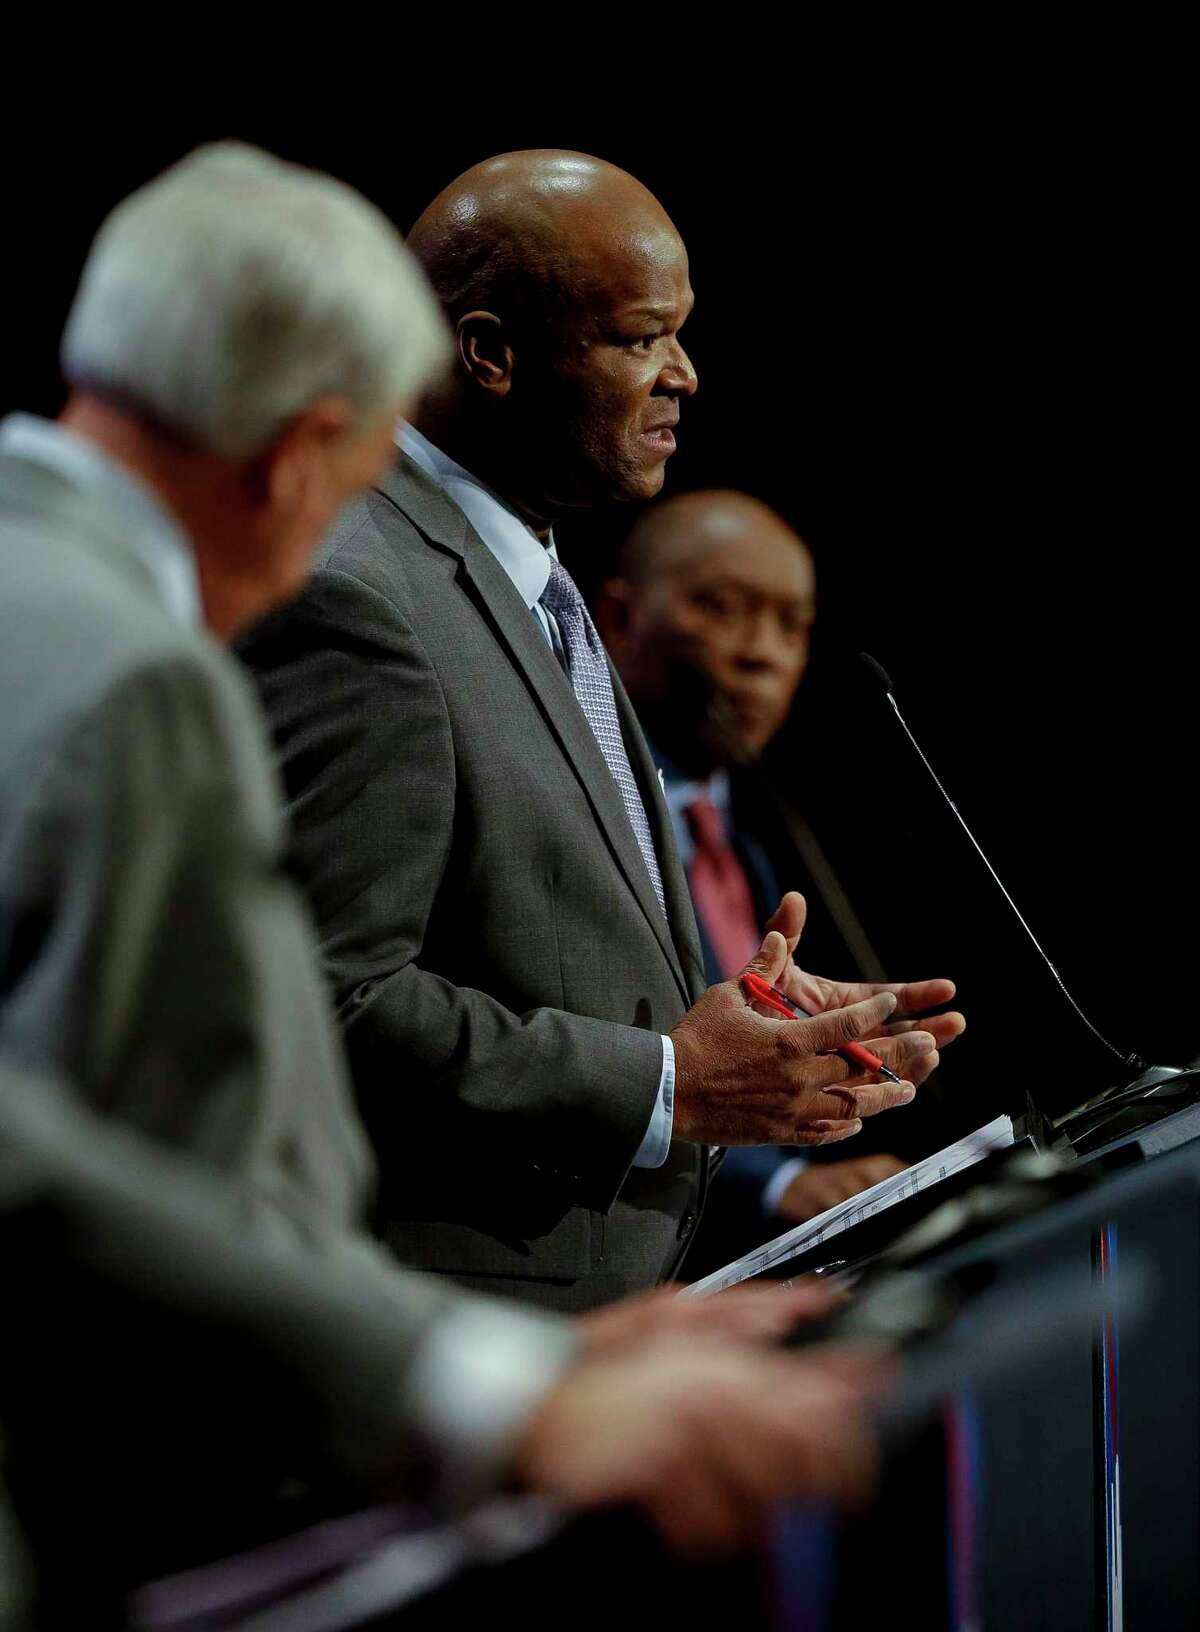 Dwight Boykins answers a question during the mayoral debate at the Morris Cultural Arts Center at Houston Baptist University Friday, Oct. 11, 2019, in Houston.